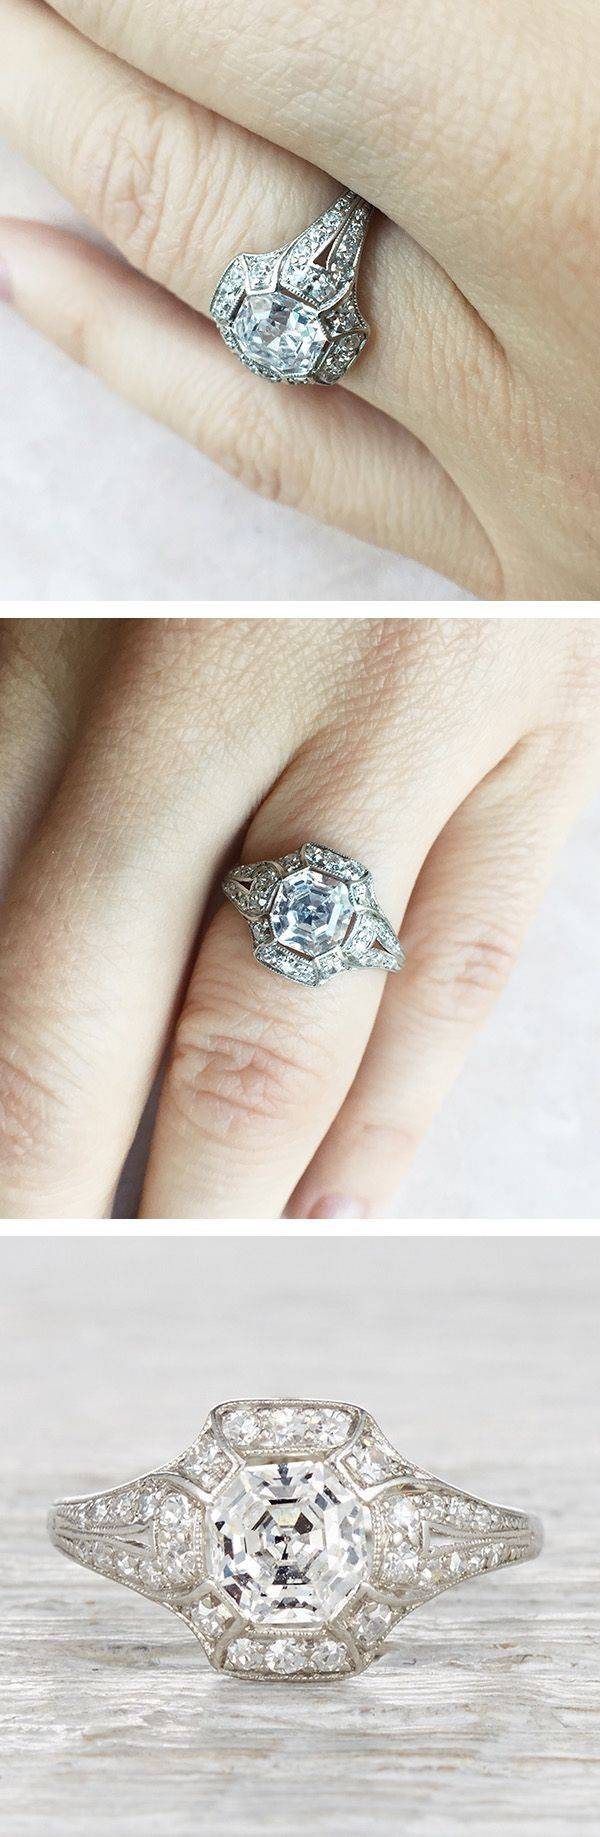 Best 25+ Vintage Anniversary Rings Ideas On Pinterest | Engagement Pertaining To Best And Newest Vintage Anniversary Rings (View 8 of 25)